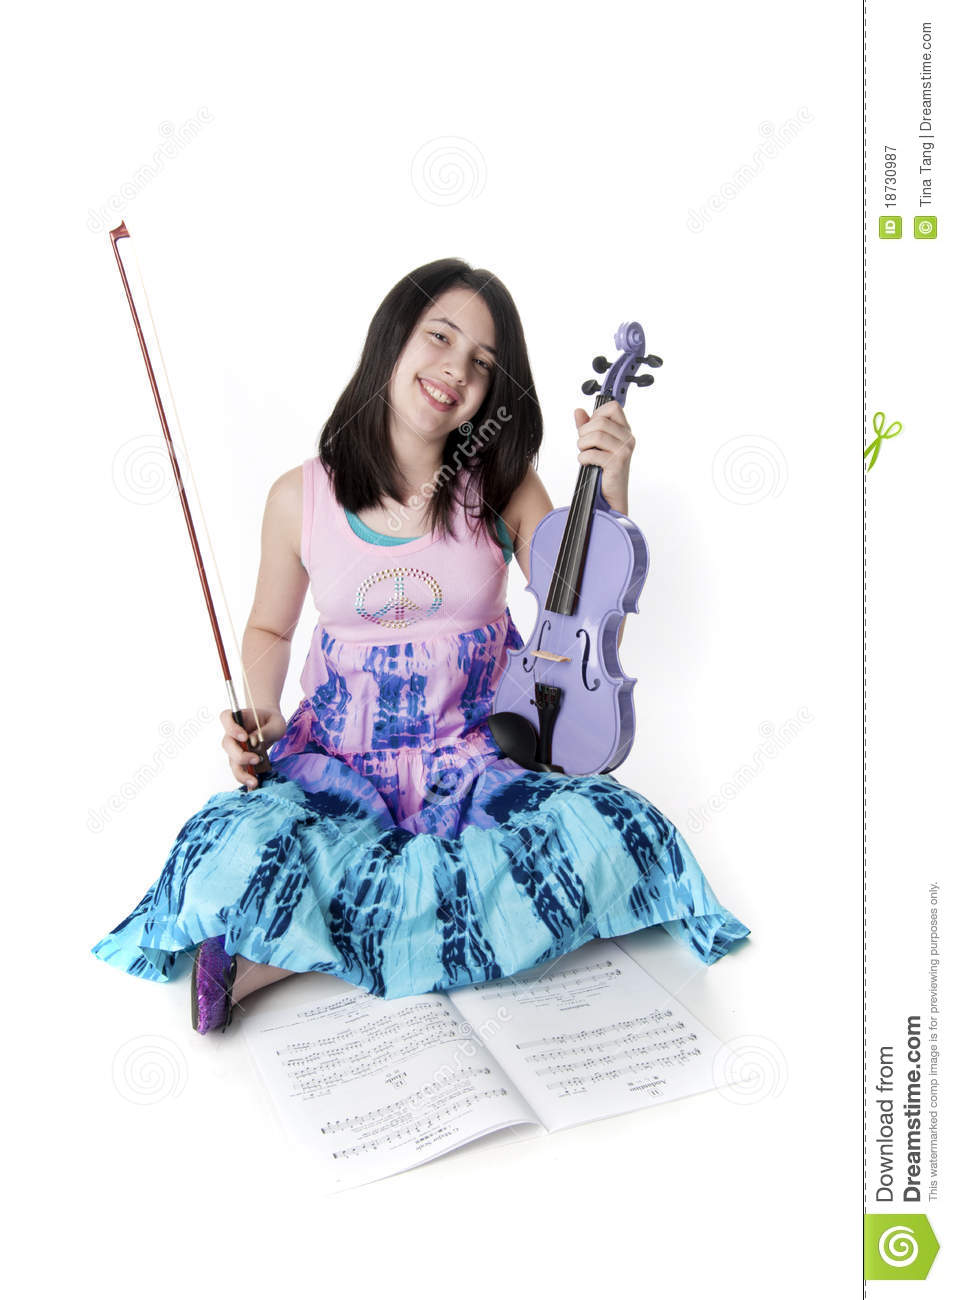 Preteen girl holding a purple violin in tie dye dress.